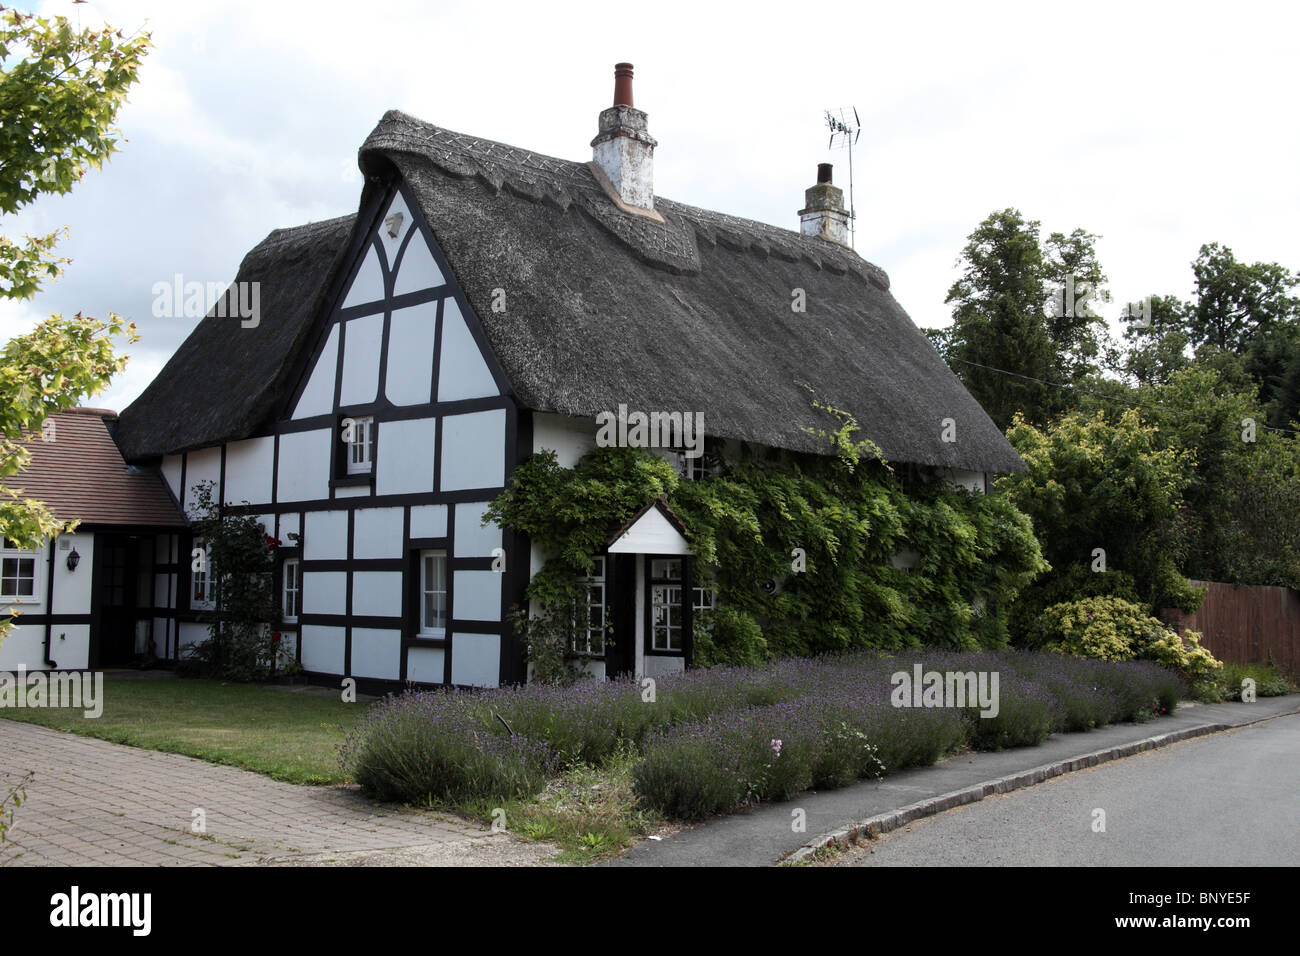 Thatched cottage ladbroke warwickshire england the village is stock photo royalty free - The thatched cottage ...